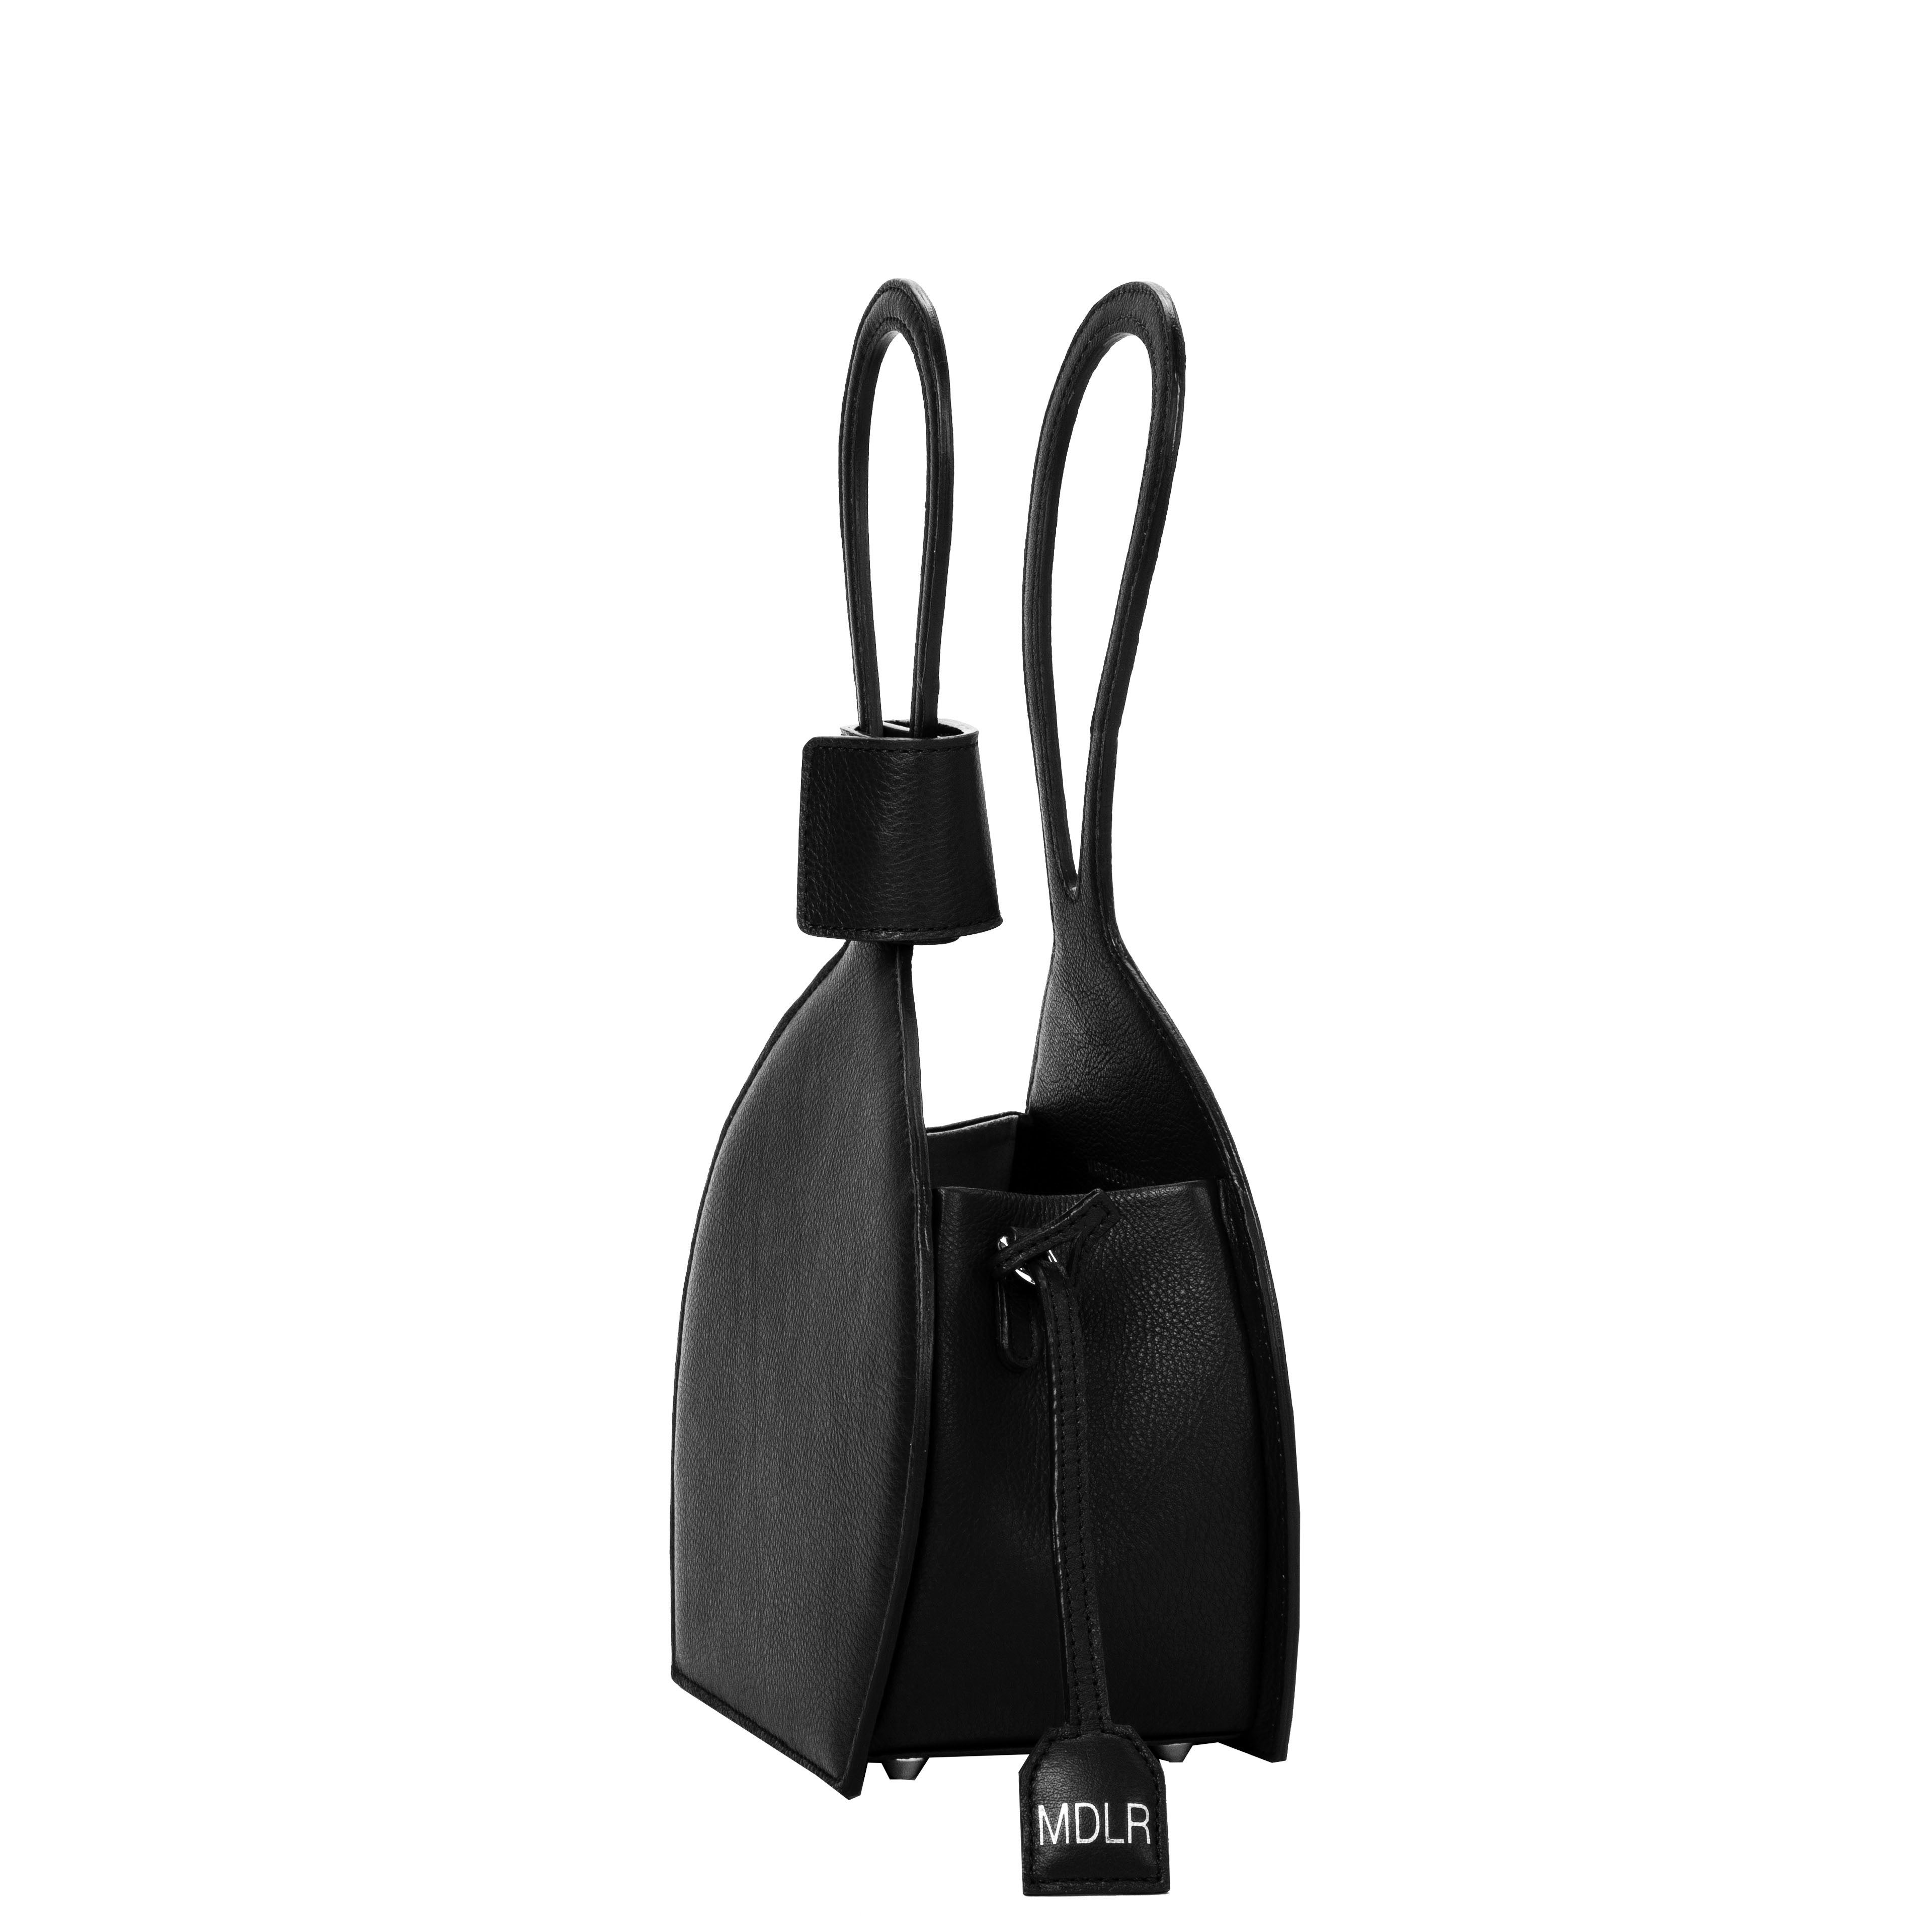 ATENA BLACK PURSE-SLING BAG, a black bag, handbag with minimalist look from MDLR